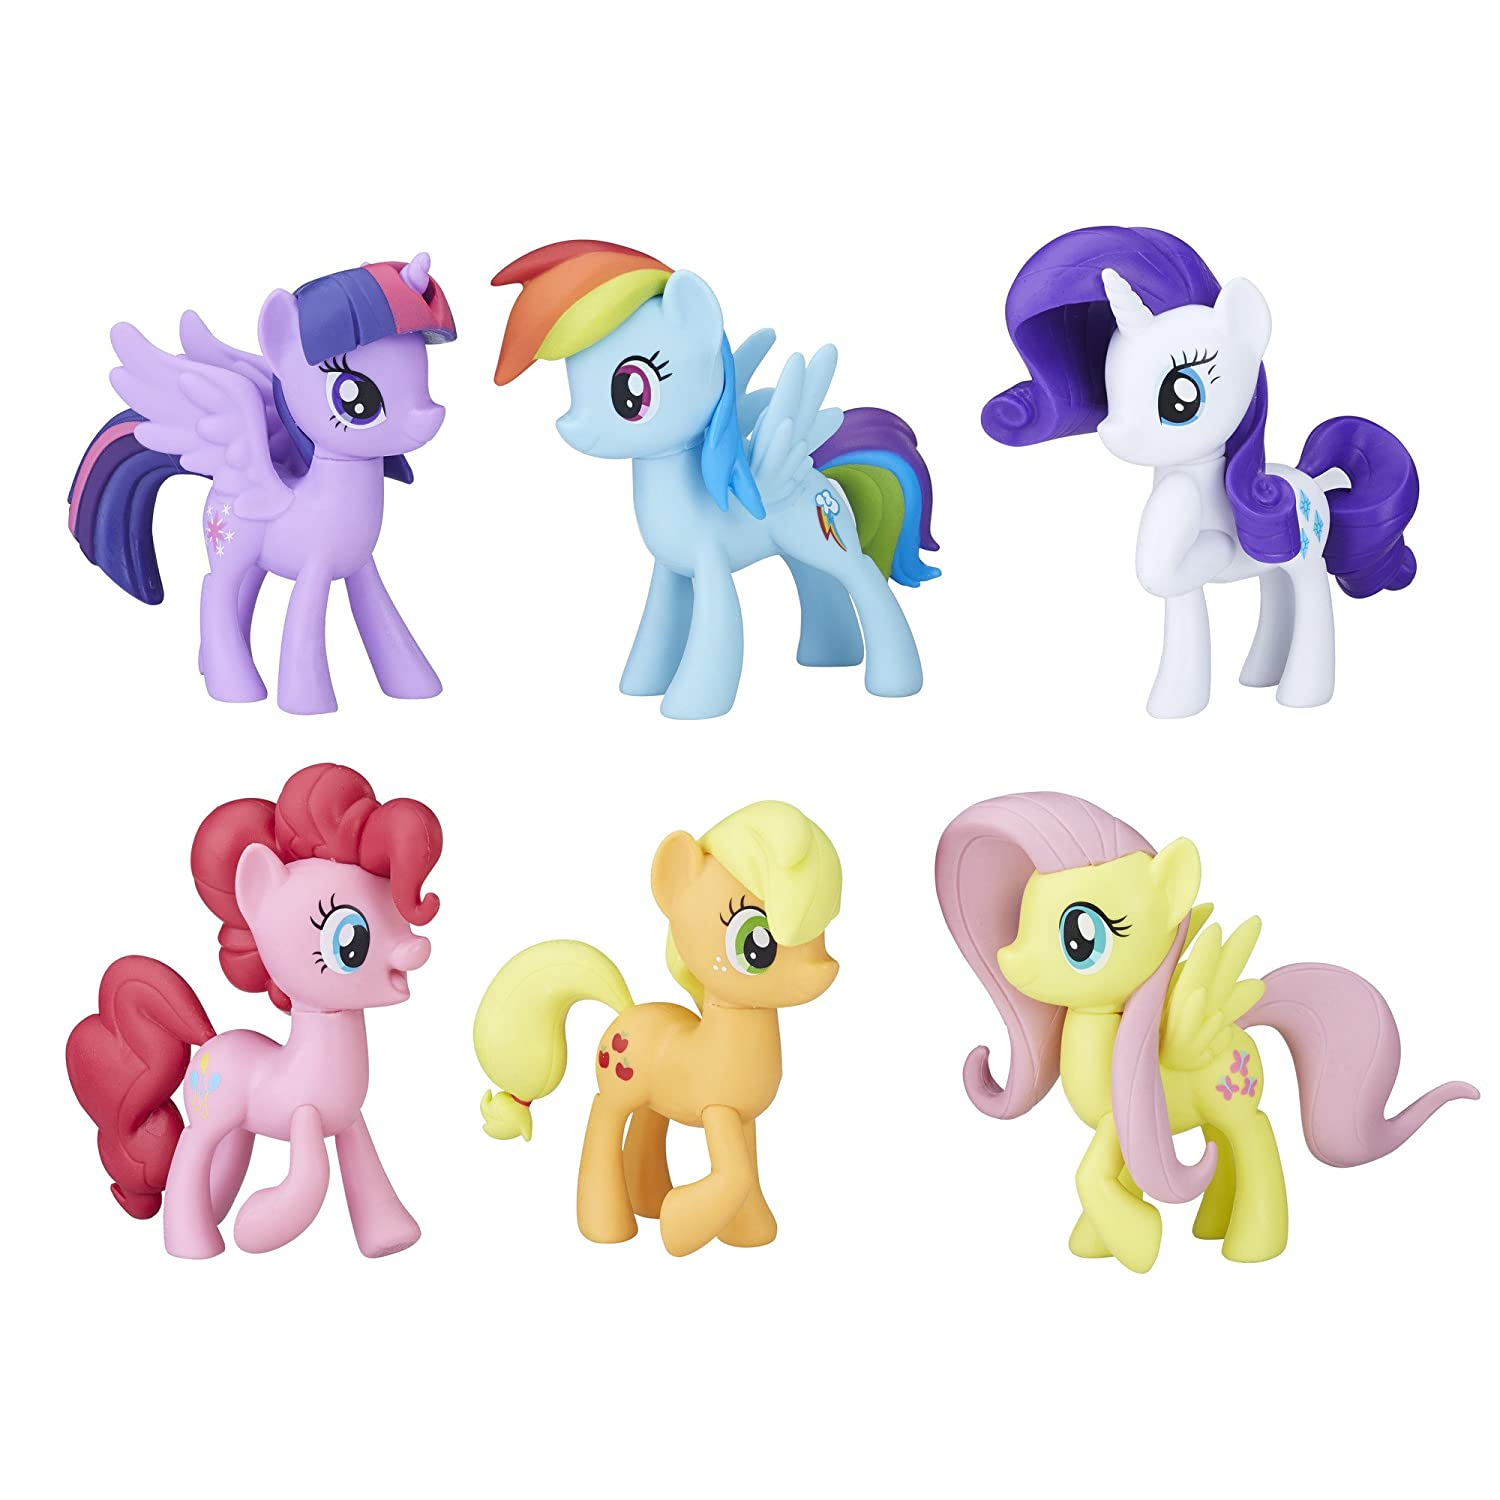 Amazoncom My Little Pony Meet The Mane 6 Ponies Collection Toys